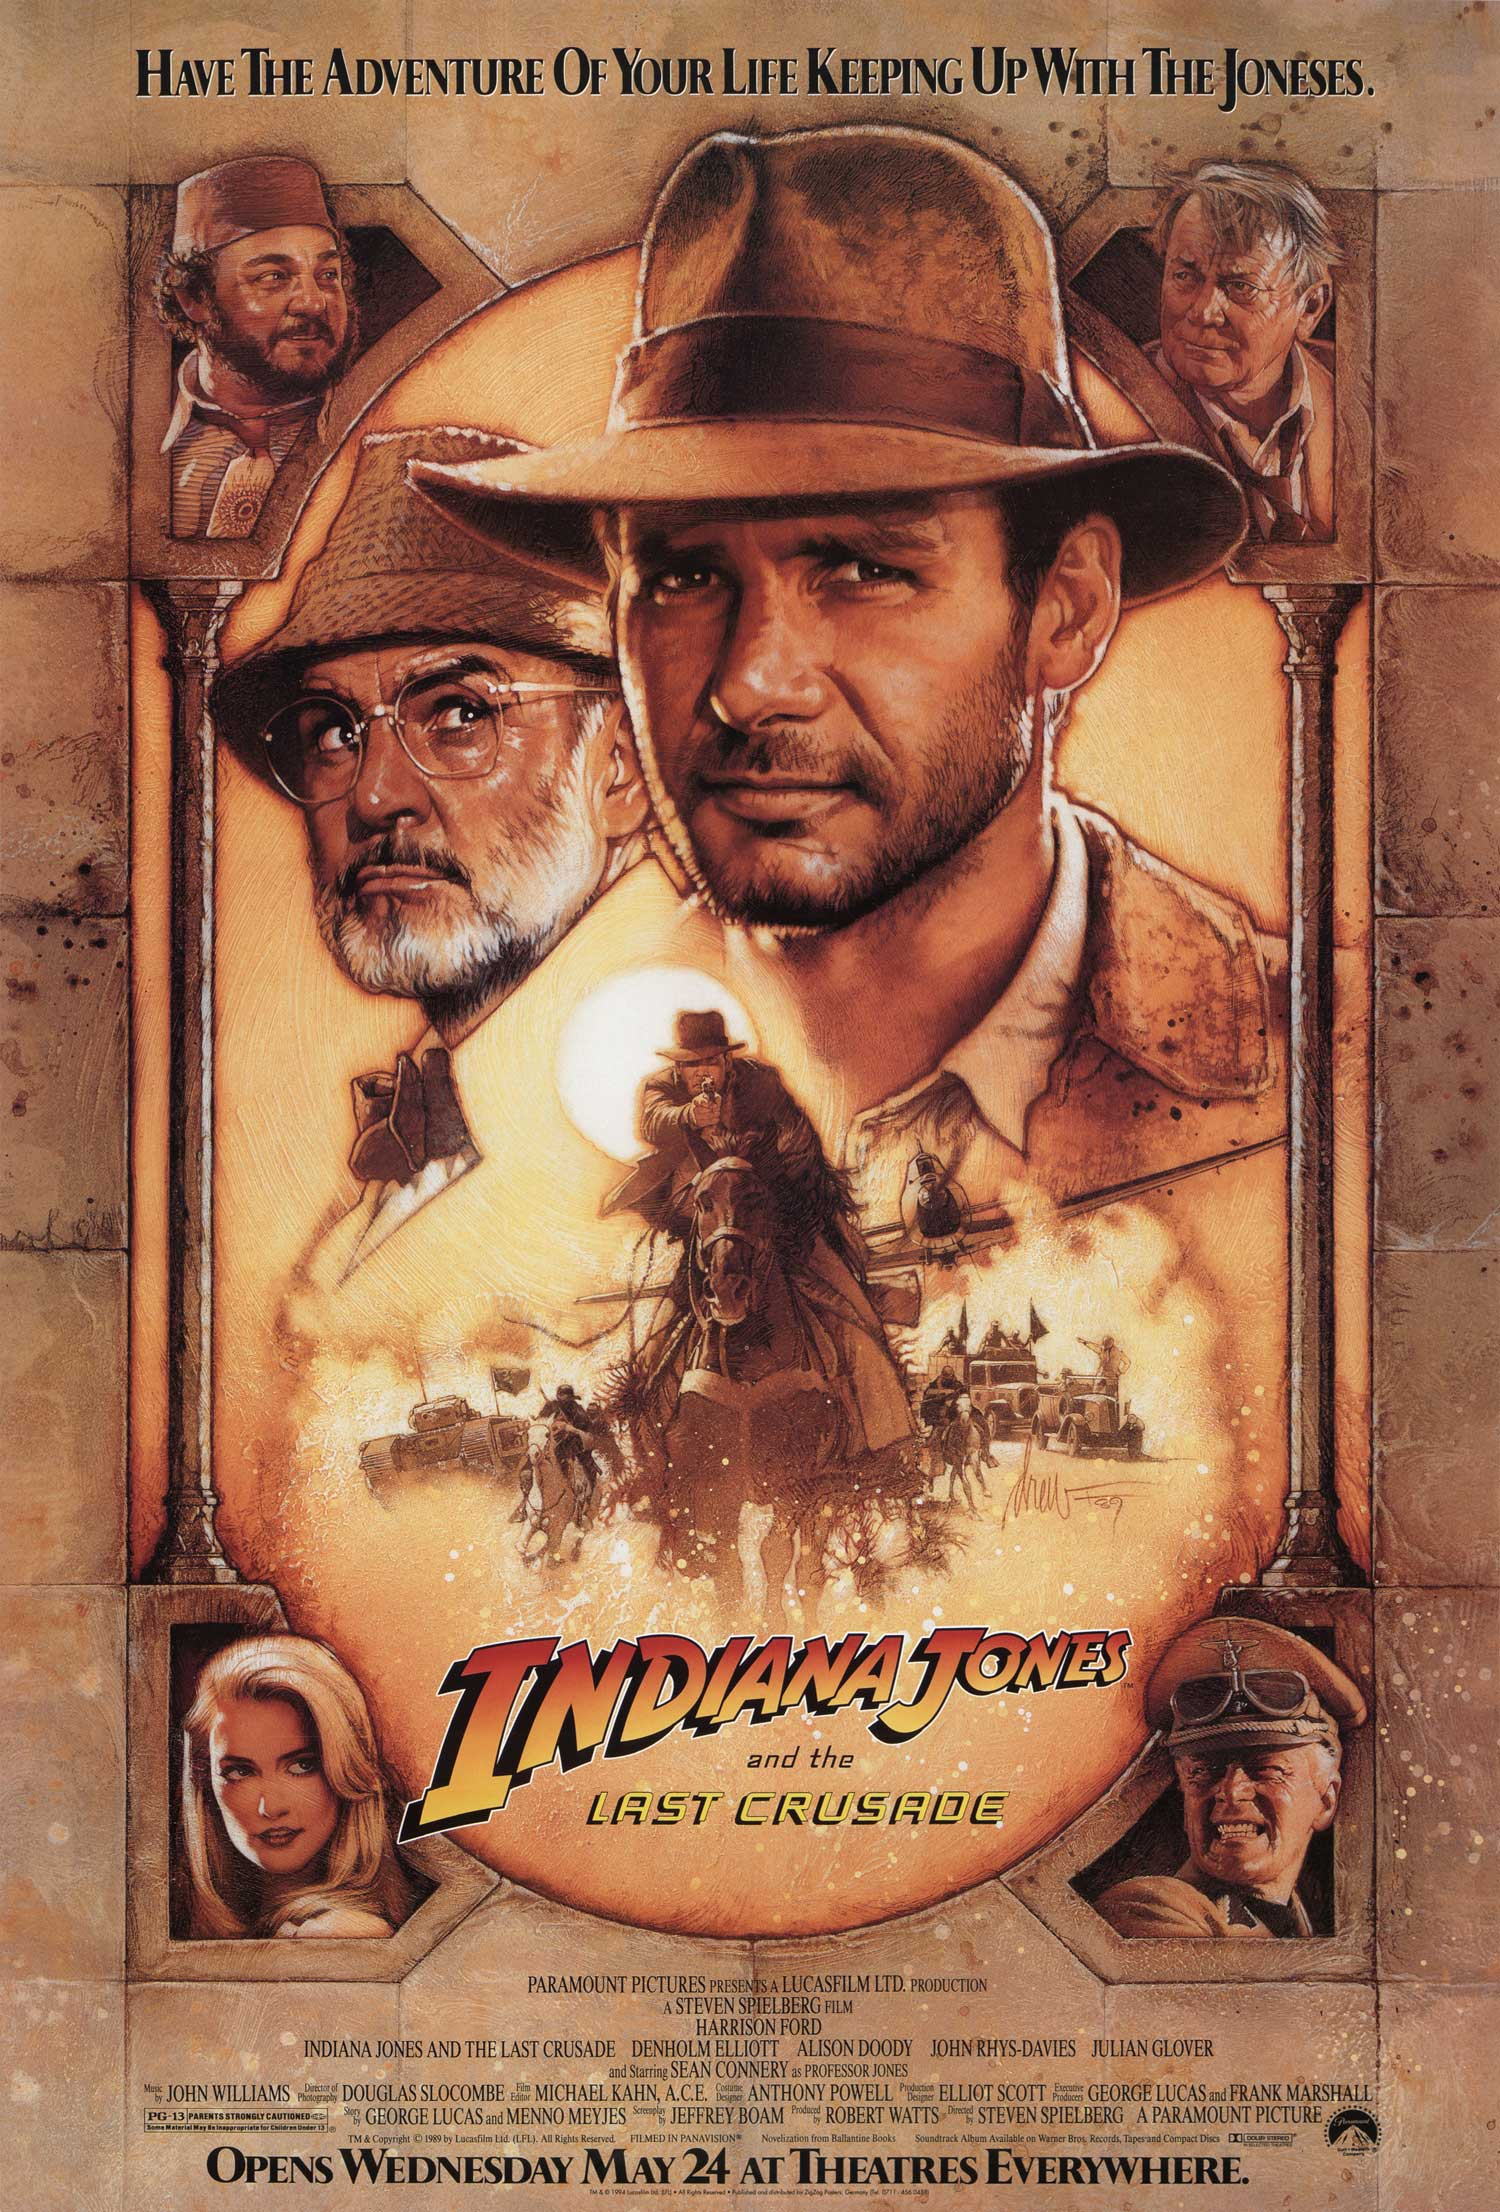 http://collider.com/wp-content/uploads/indiana-jones-and-the-last-crusade-poster.jpg